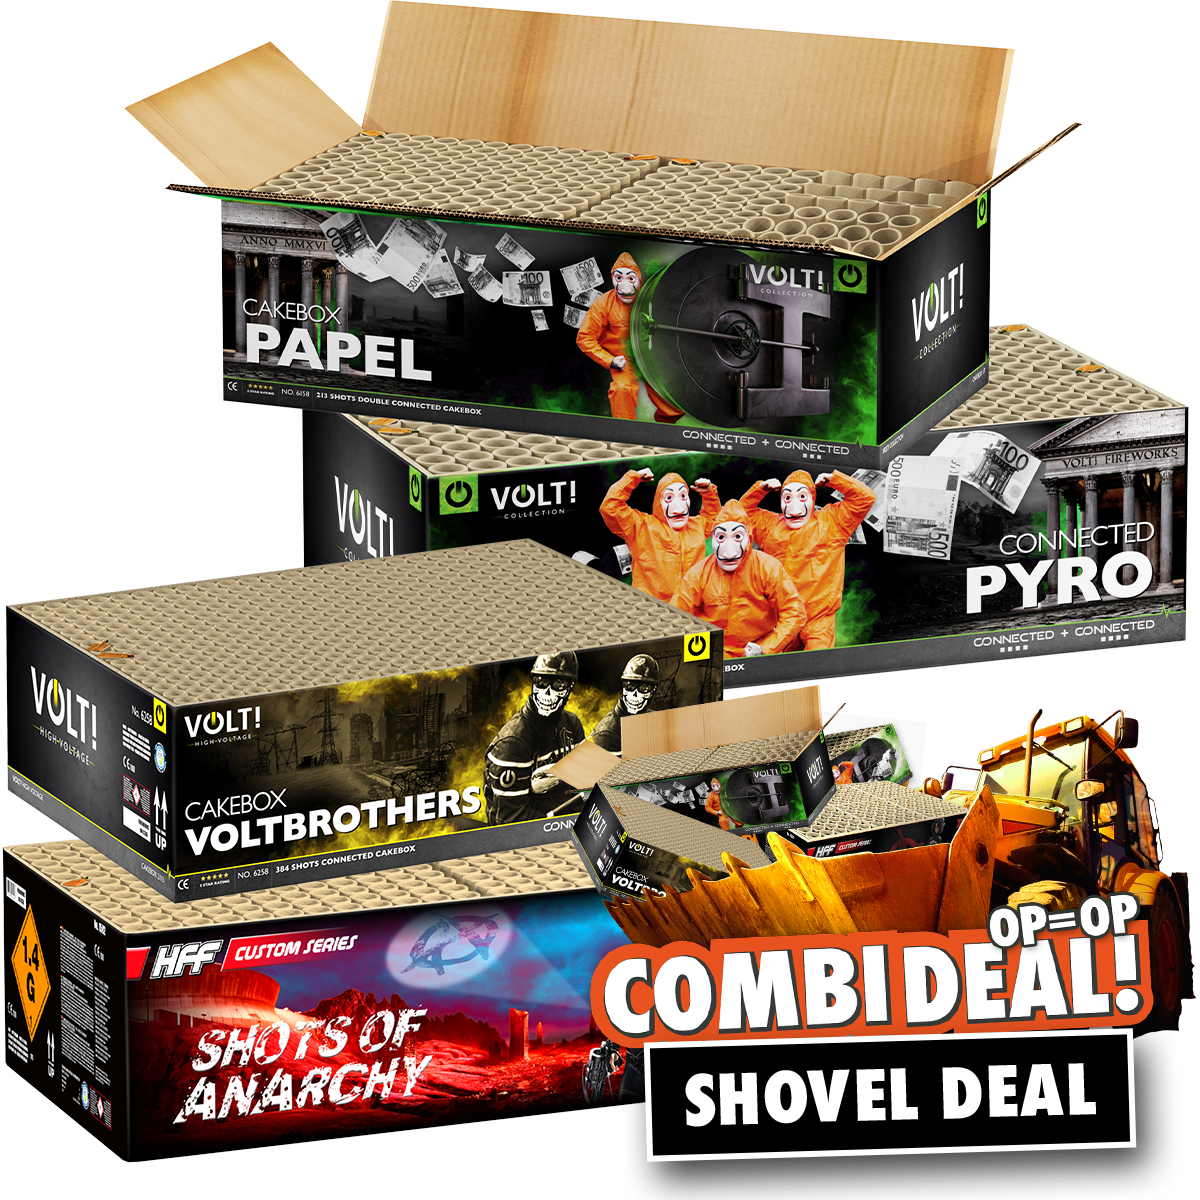 Combi deal Shovel deal